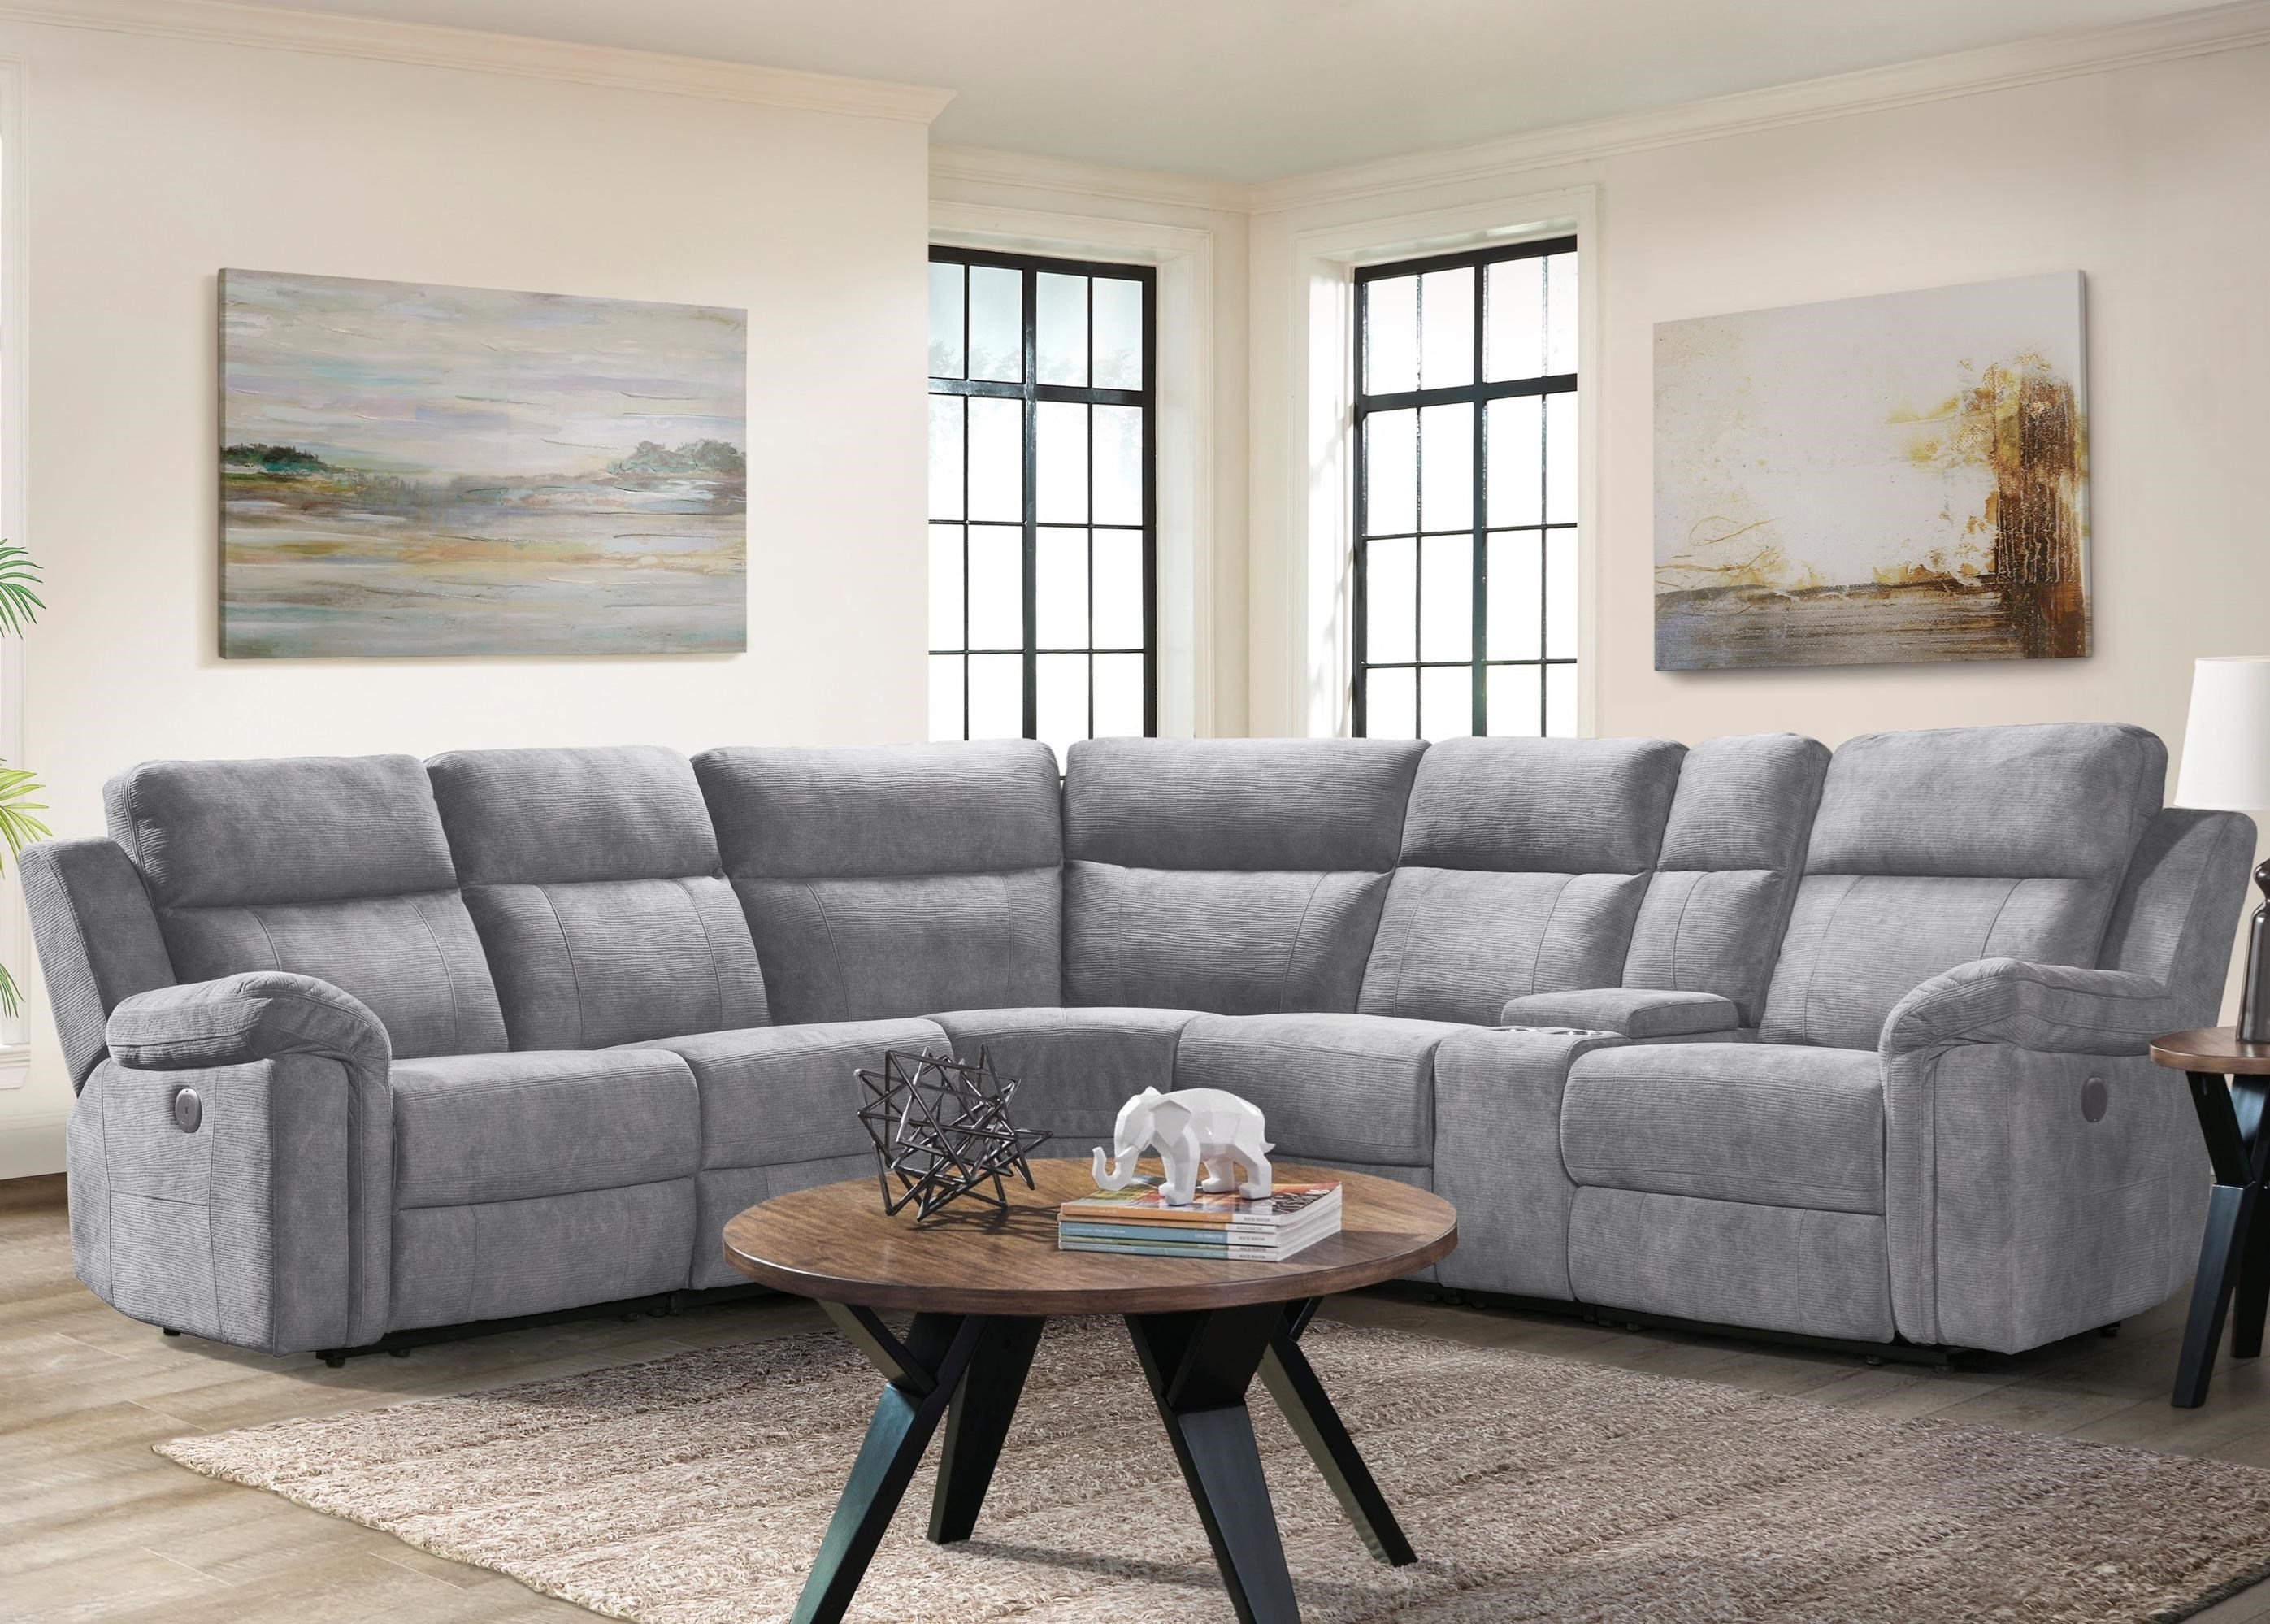 Thomas 6-Piece Power Reclining Sectional Sofa by Klaussner International at Beck's Furniture